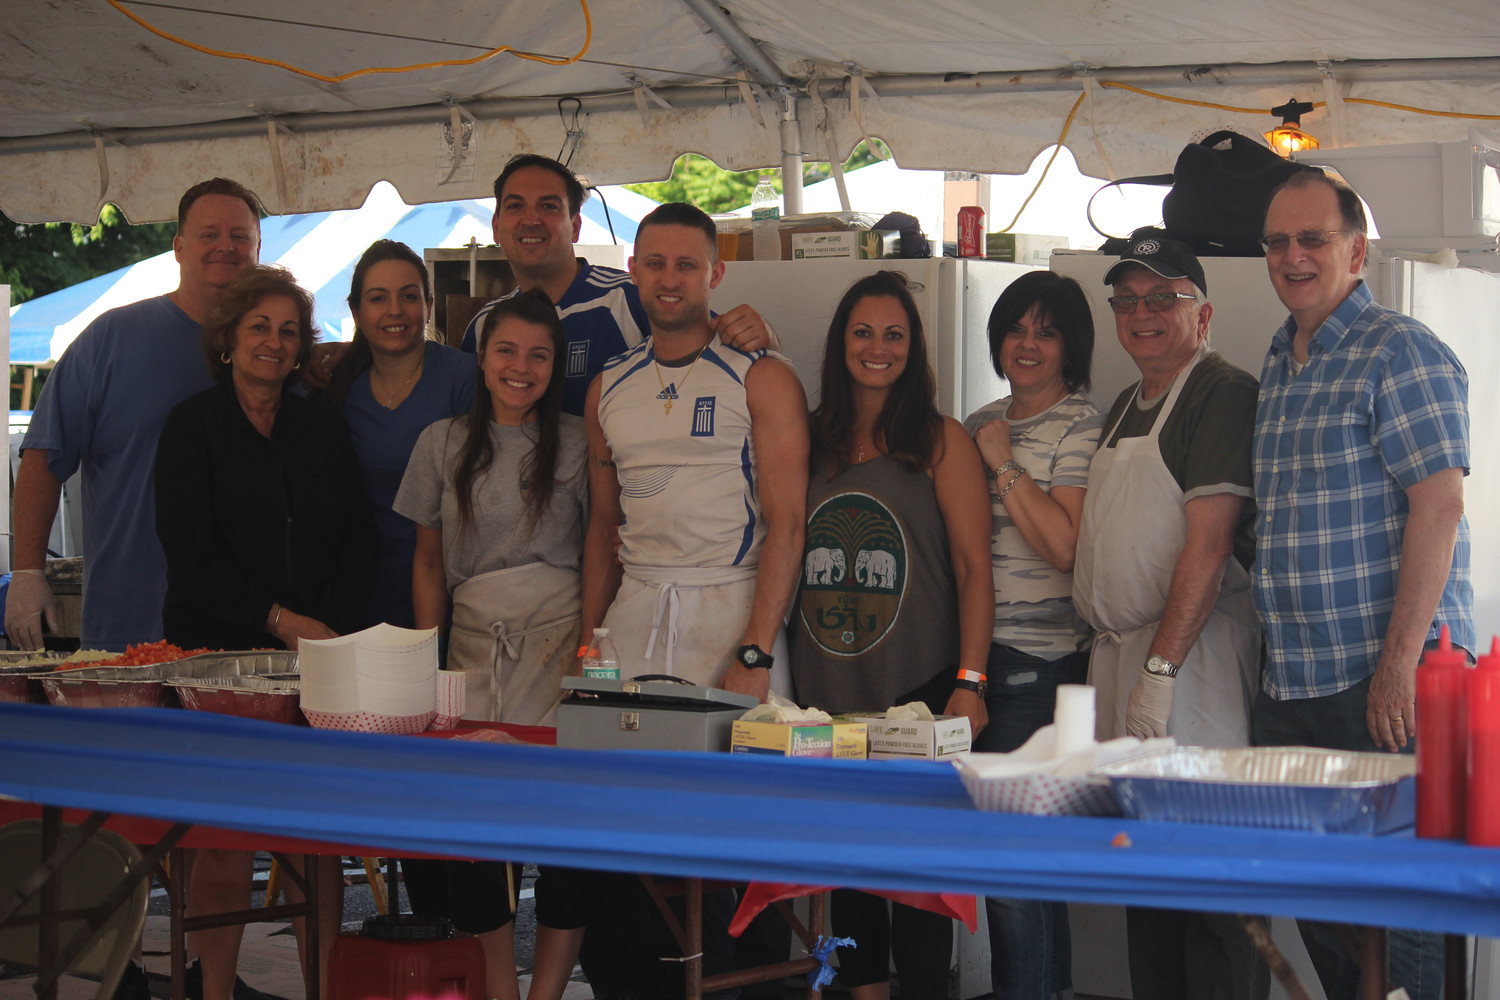 The Kallinikos family of Tower's Funeral Home served up some Greek treats at their tent.